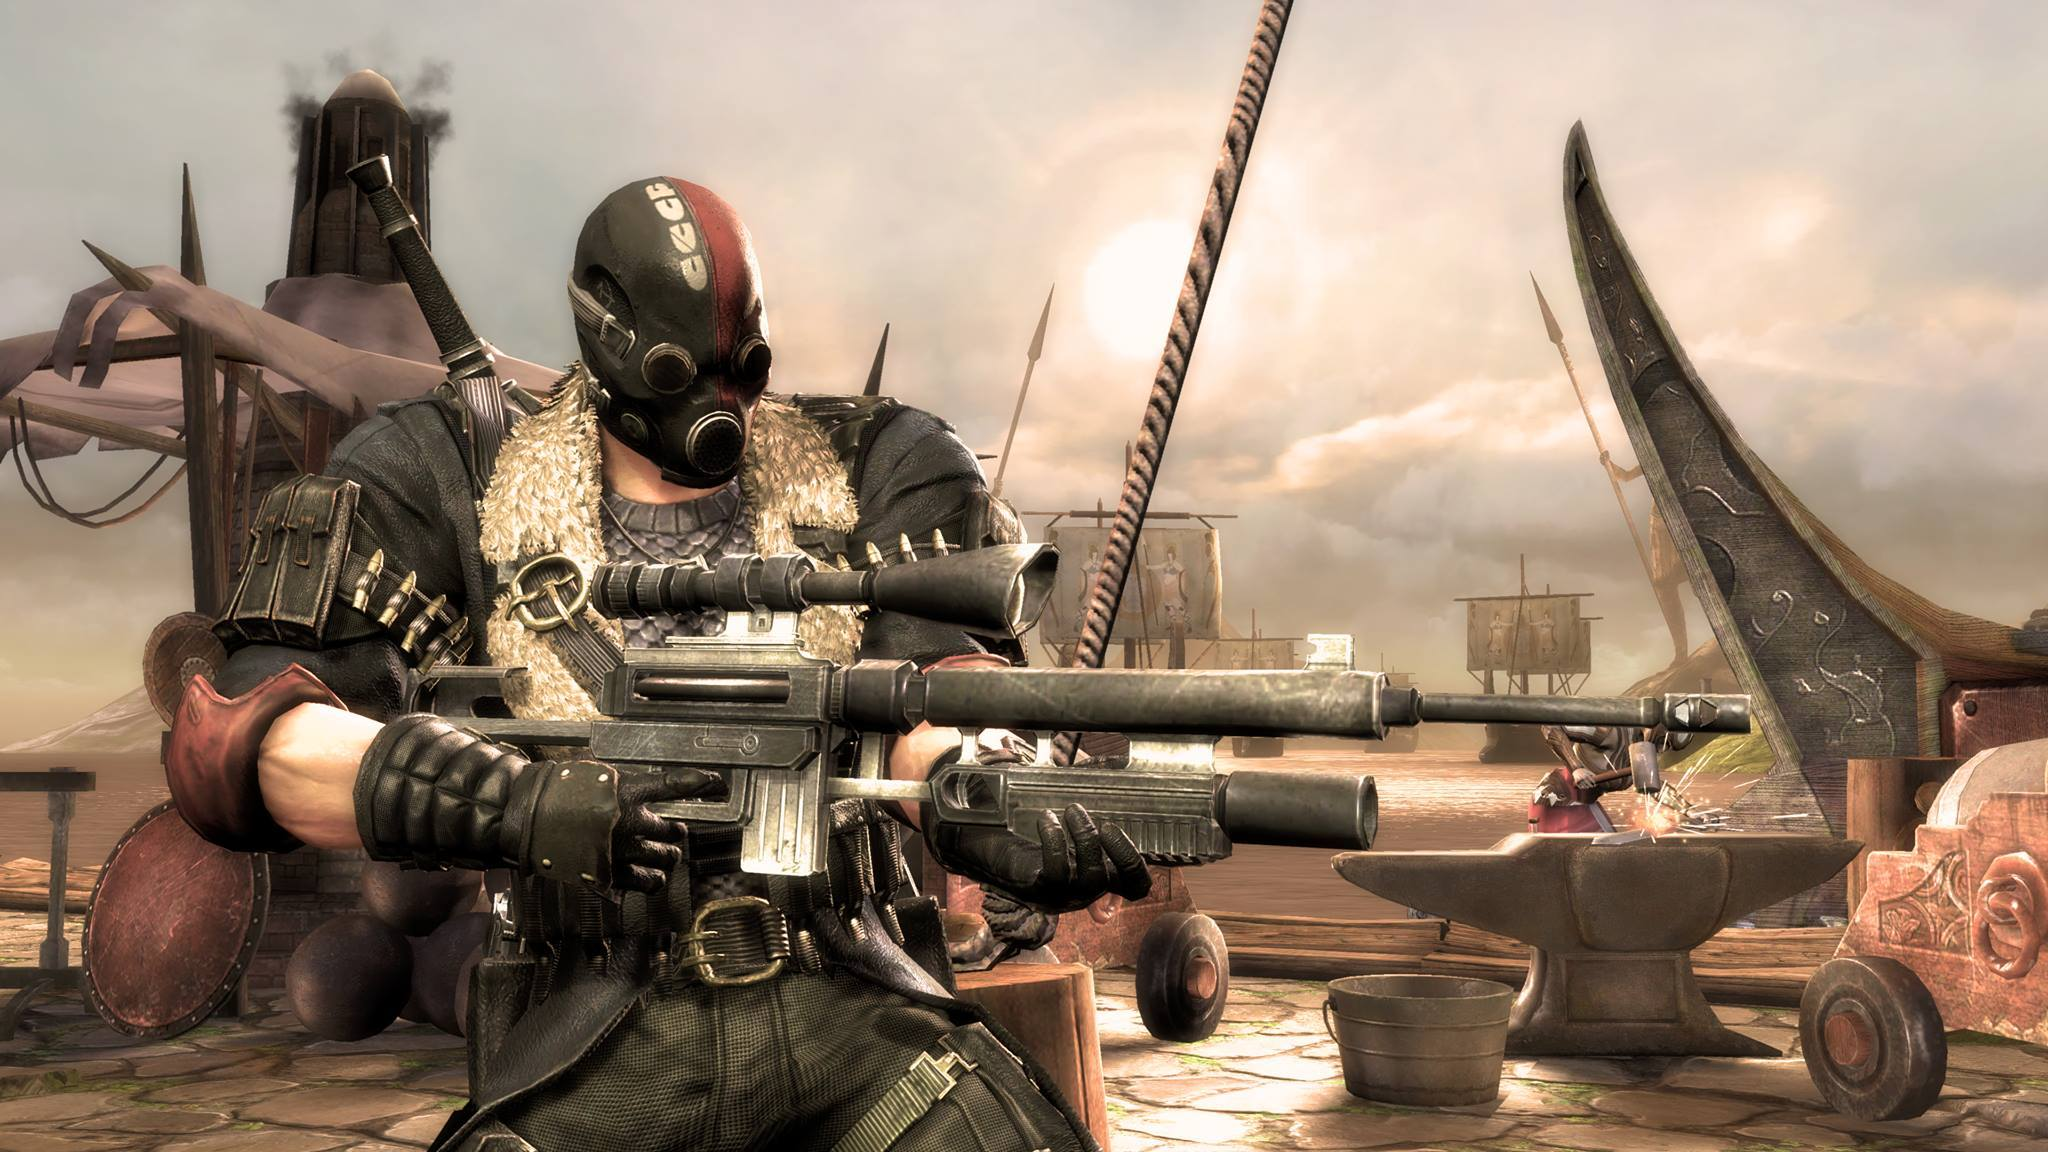 28 Best Free Injustice Red Son Deathstroke Wallpapers